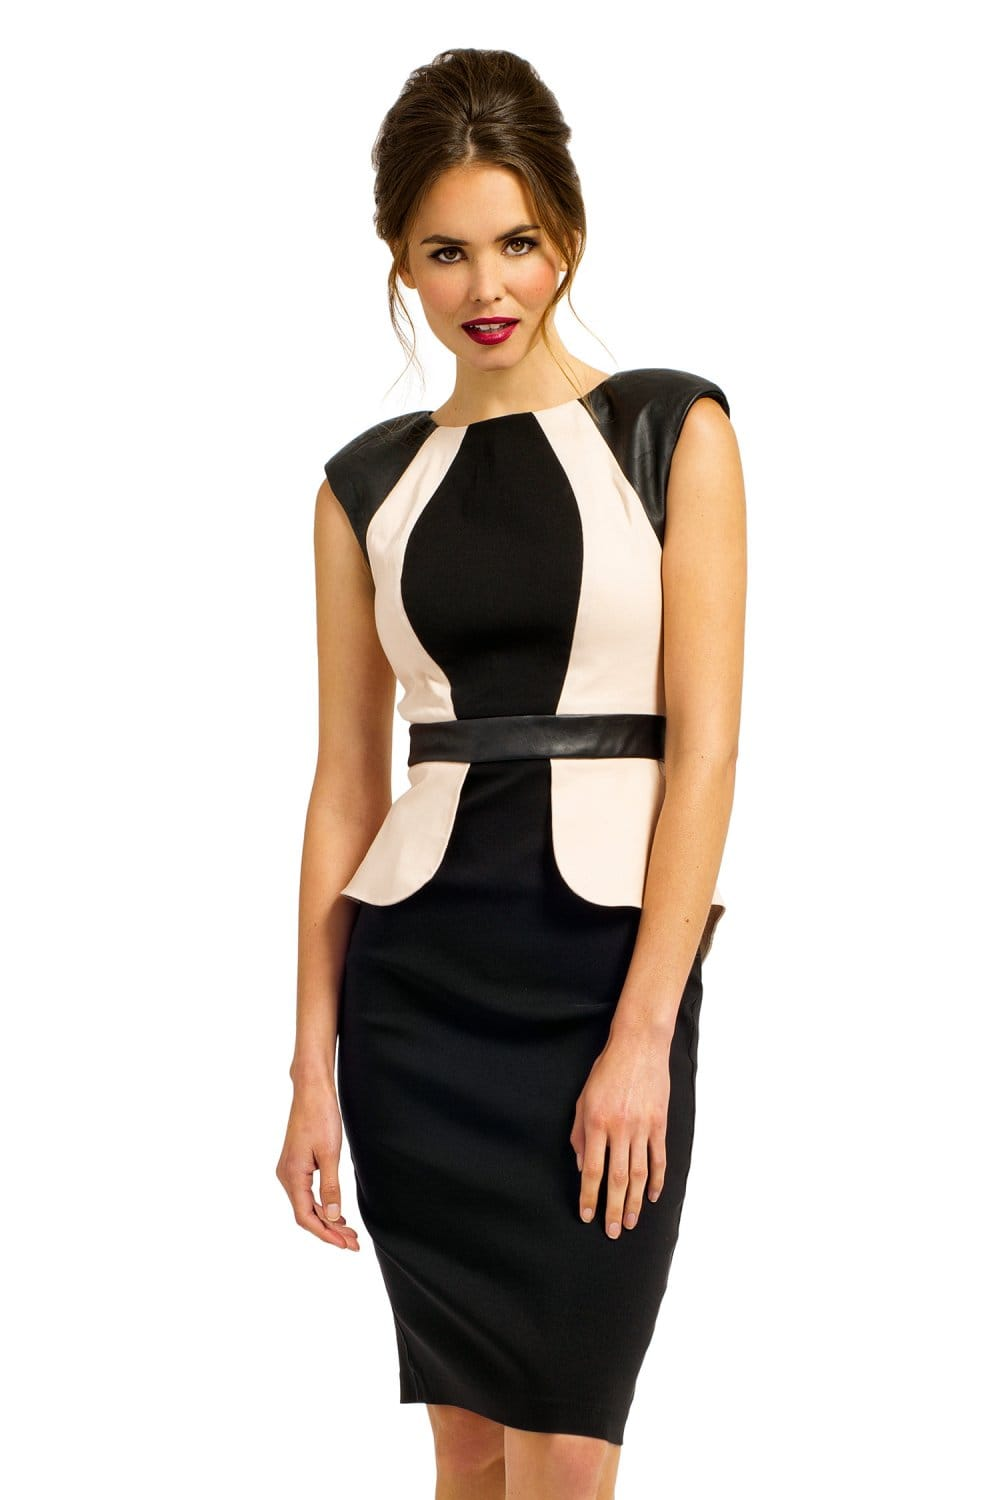 Our cheap peplum dress is a statement whichever way you look at it. New products arrive daily, and DressHead put all the peplum dresses in one place to browse the latest styles!